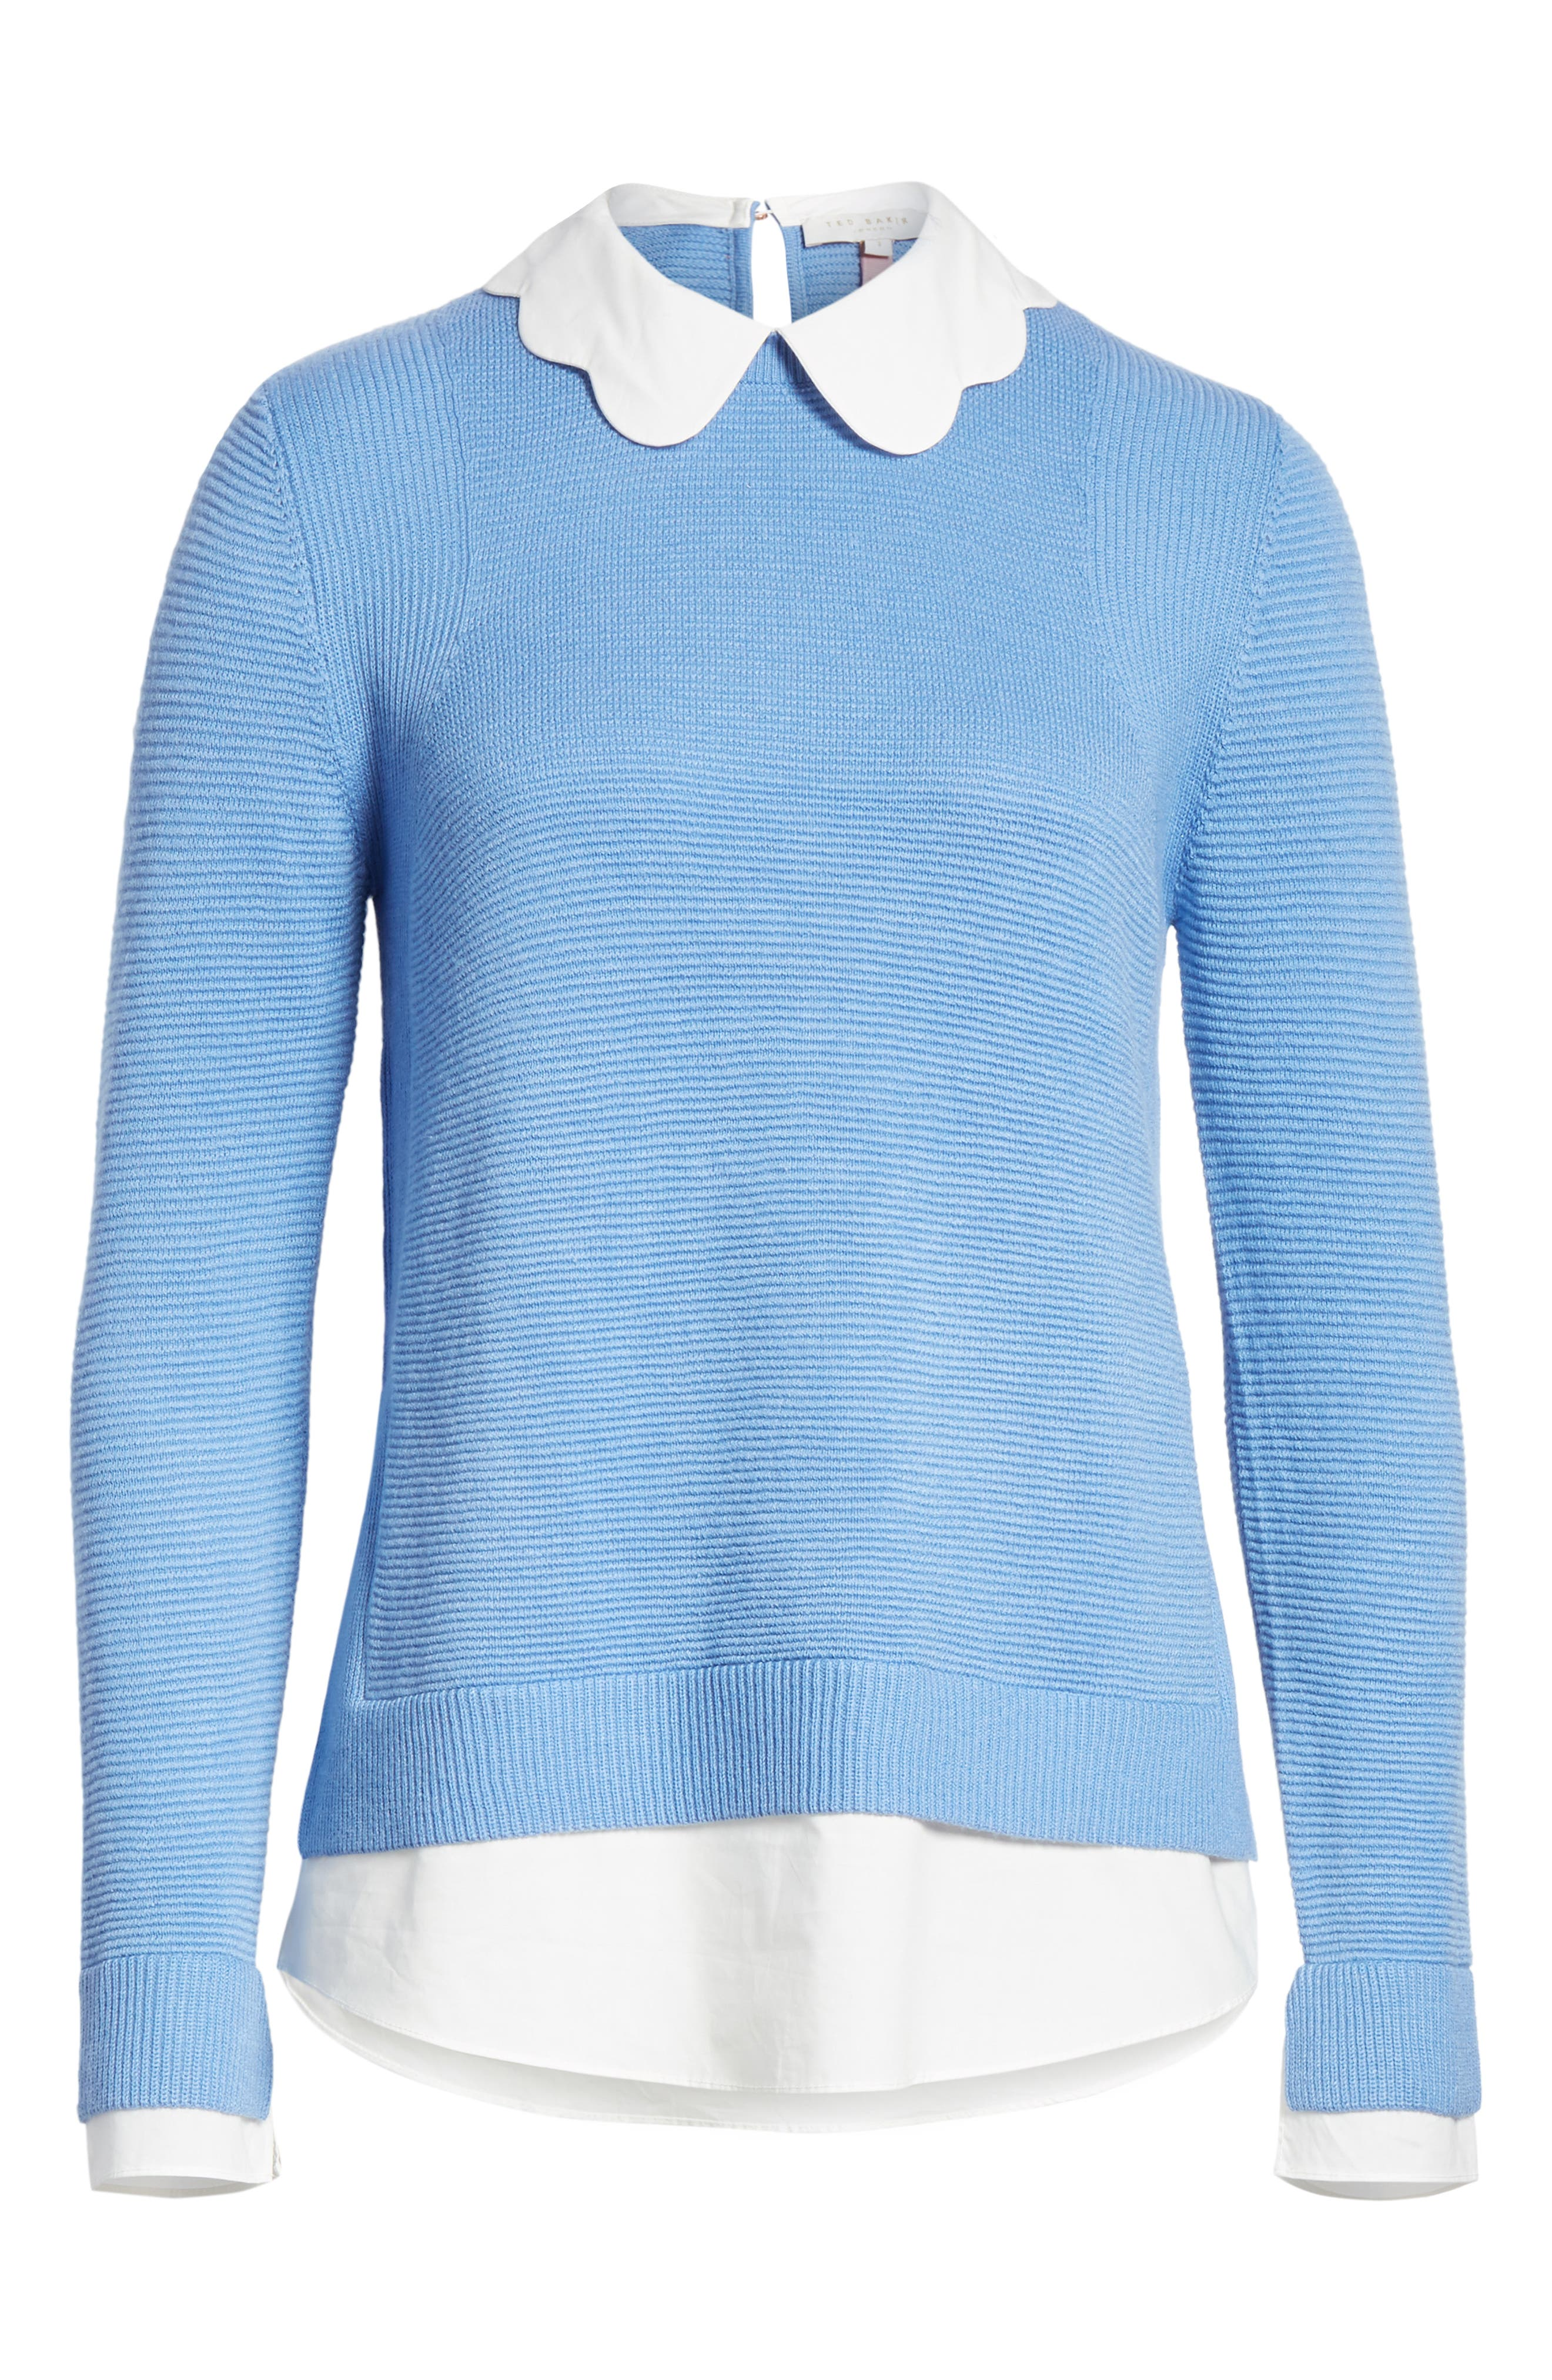 Bronwen Scalloped Collar Sweater,                             Alternate thumbnail 6, color,                             424